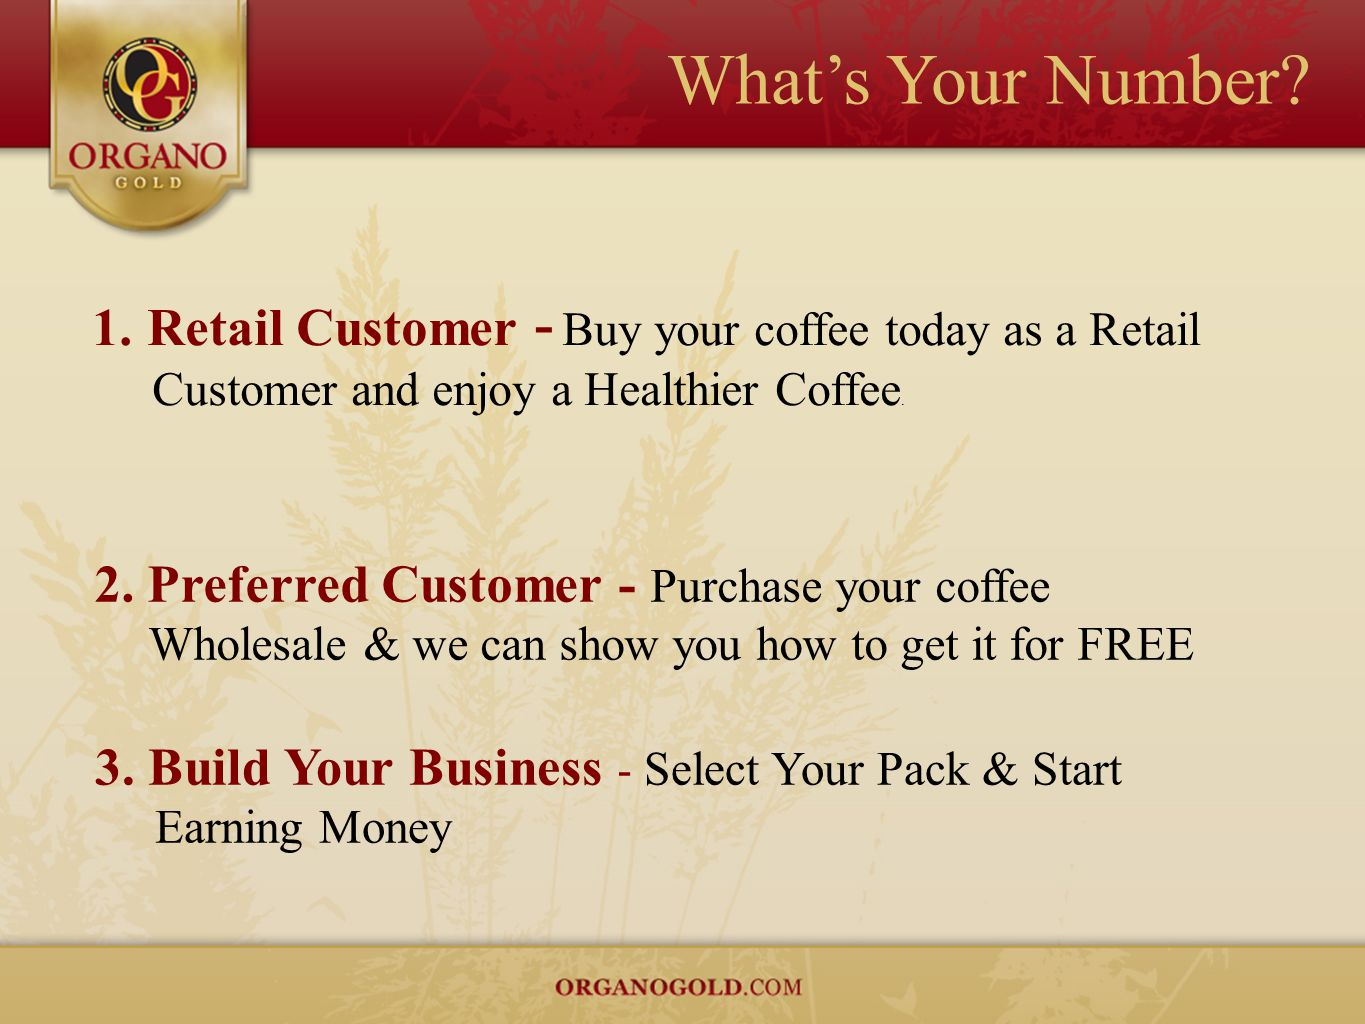 What's Your Number 1. Retail Customer - Buy your coffee today as a Retail Customer and enjoy a Healthier Coffee.